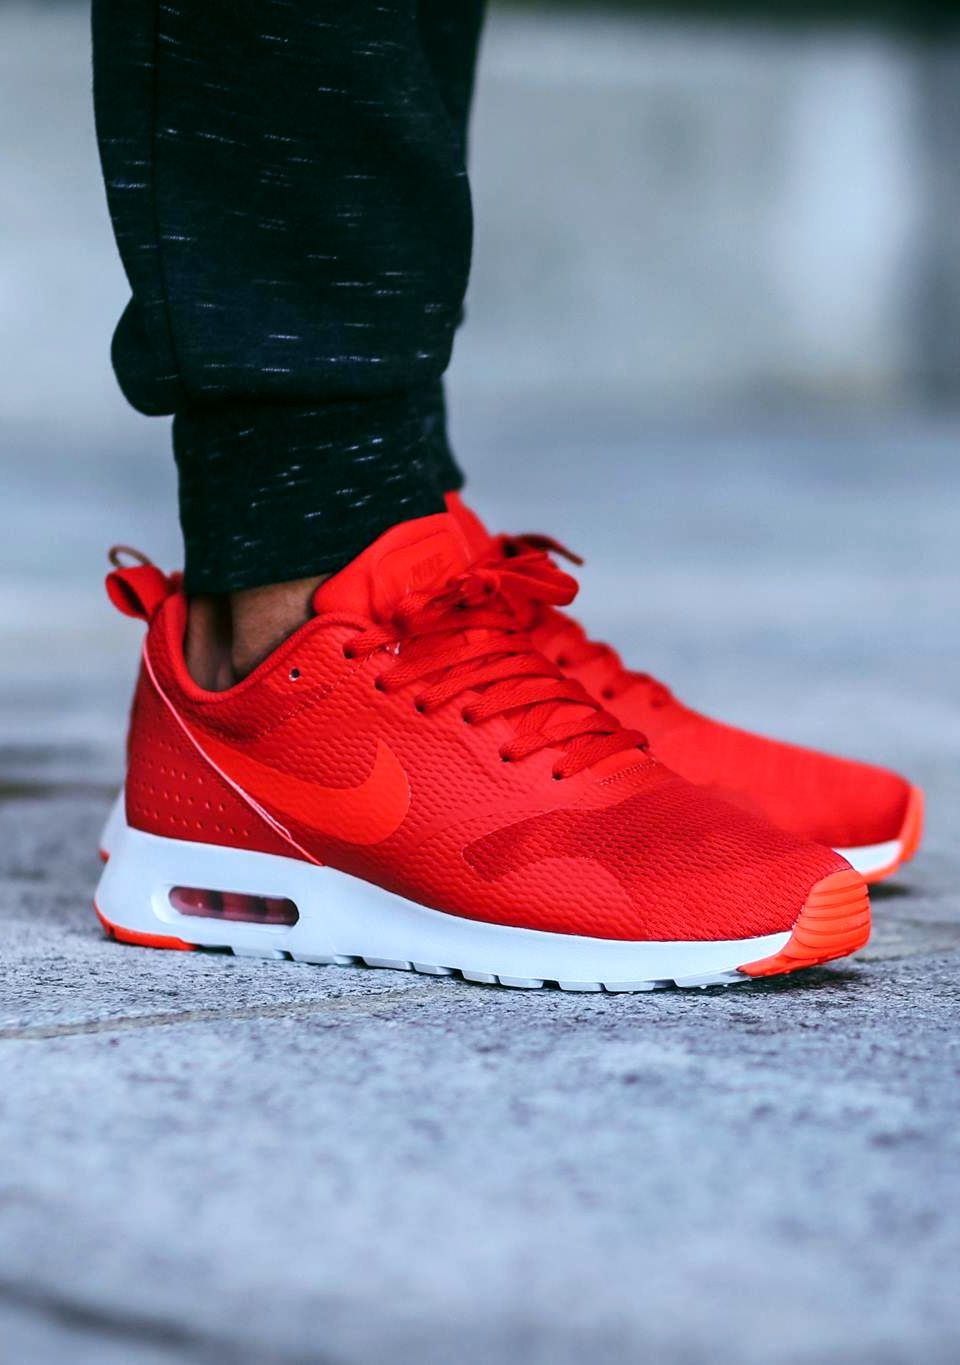 ca0081d6a3 SPORTSWEAR ™®: SPORTSWEAR: Nike Air Max Tavas 'University Red' . Don't  forget 2 follow us on Flipboard 4 more Sportswear Innovation. Best Regards.